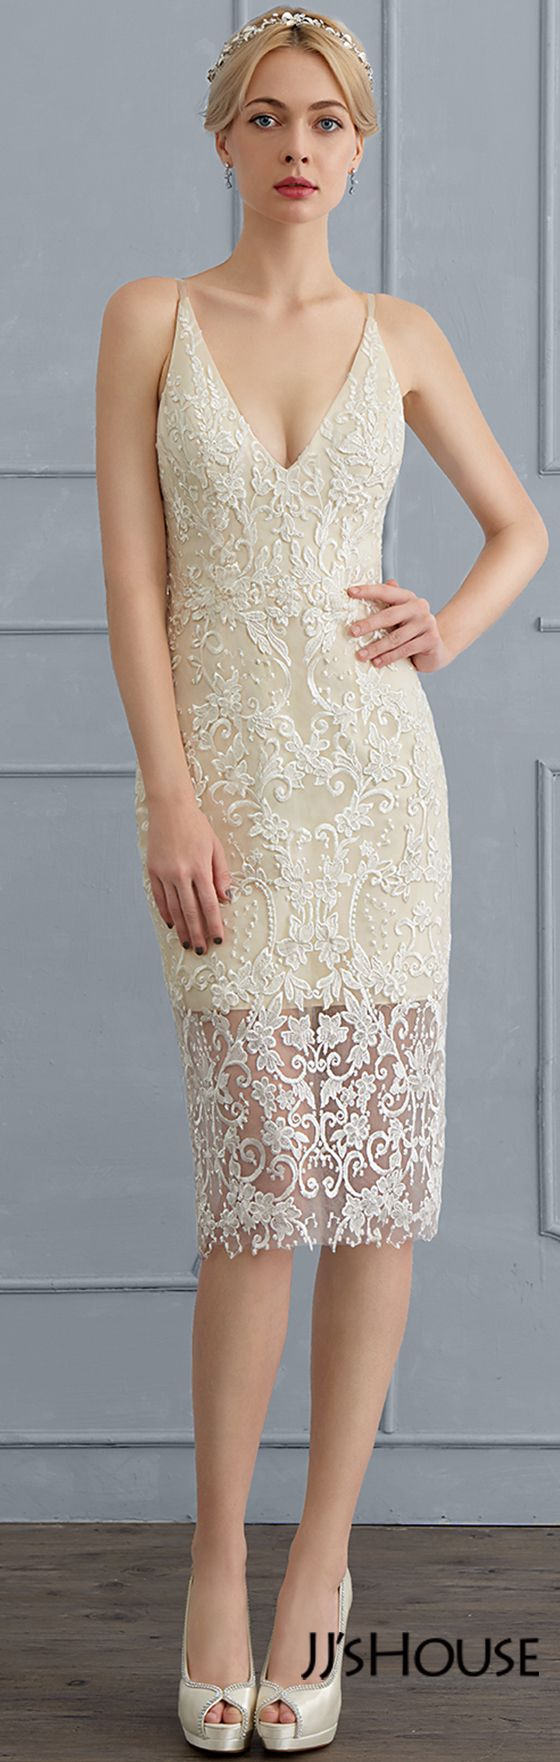 812 besten JJsHouse Wedding Dresses Bilder auf Pinterest